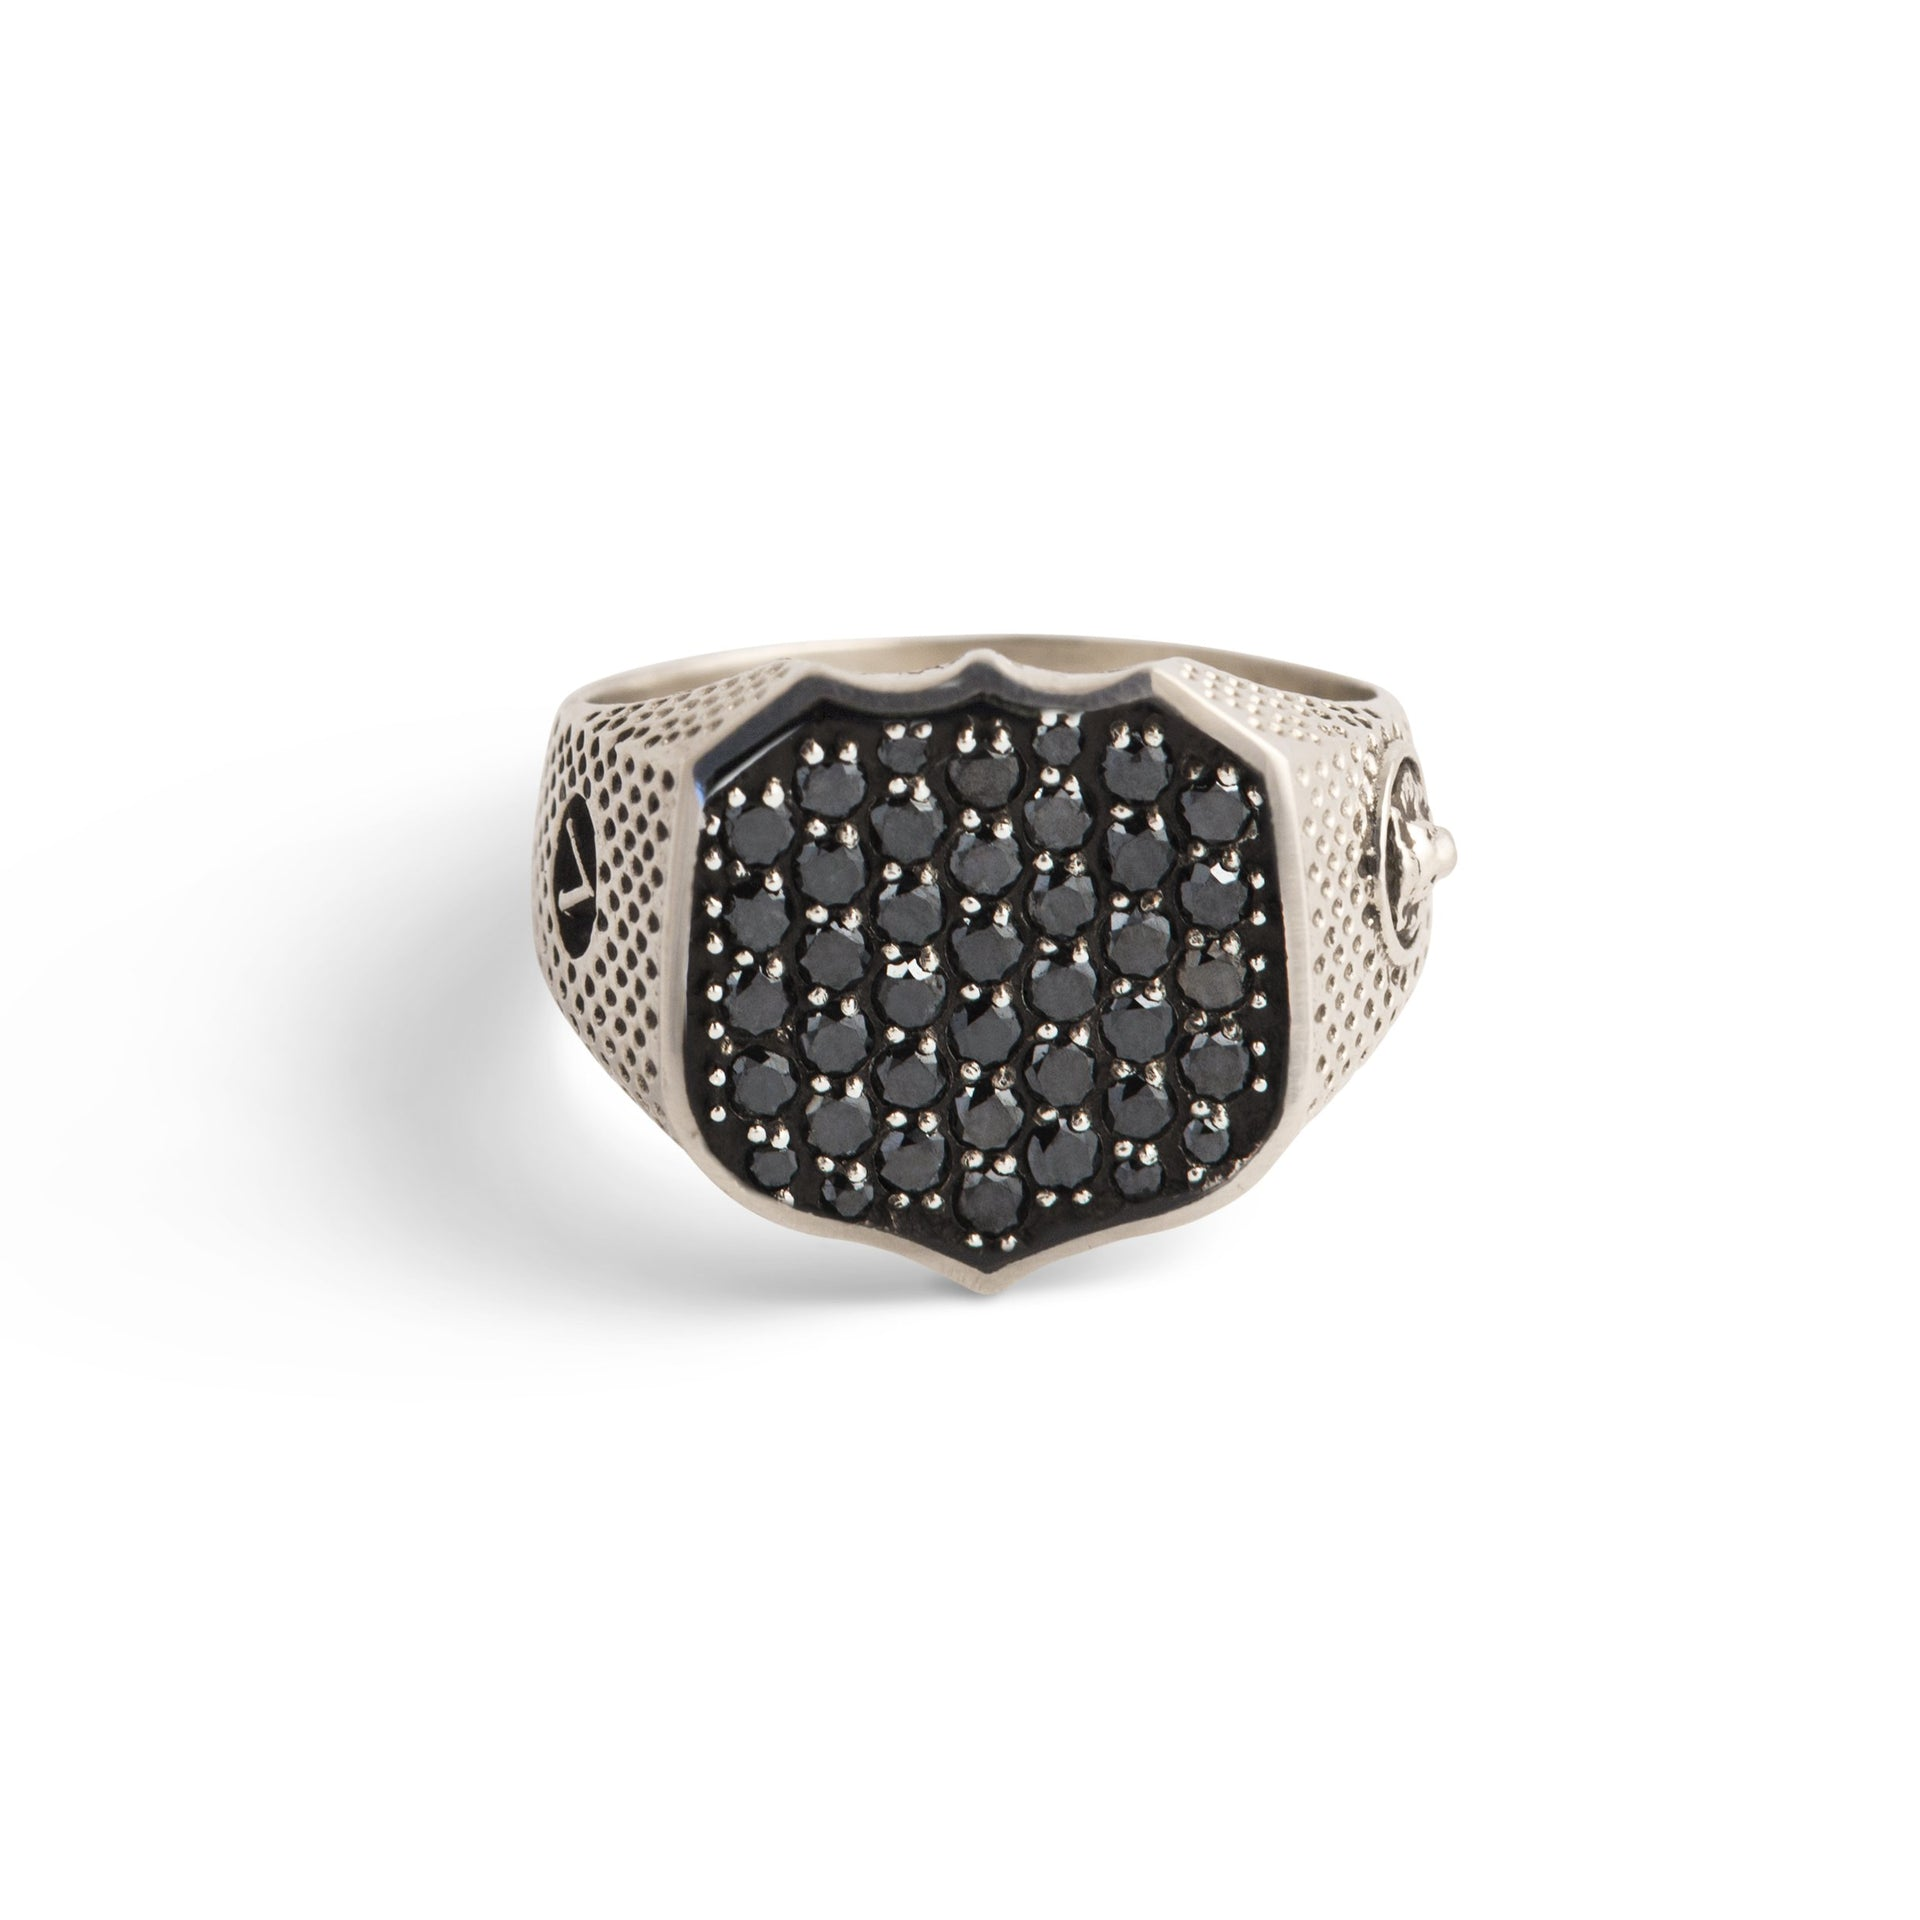 Lion Coat of Arms Signet Ring with Black Diamonds